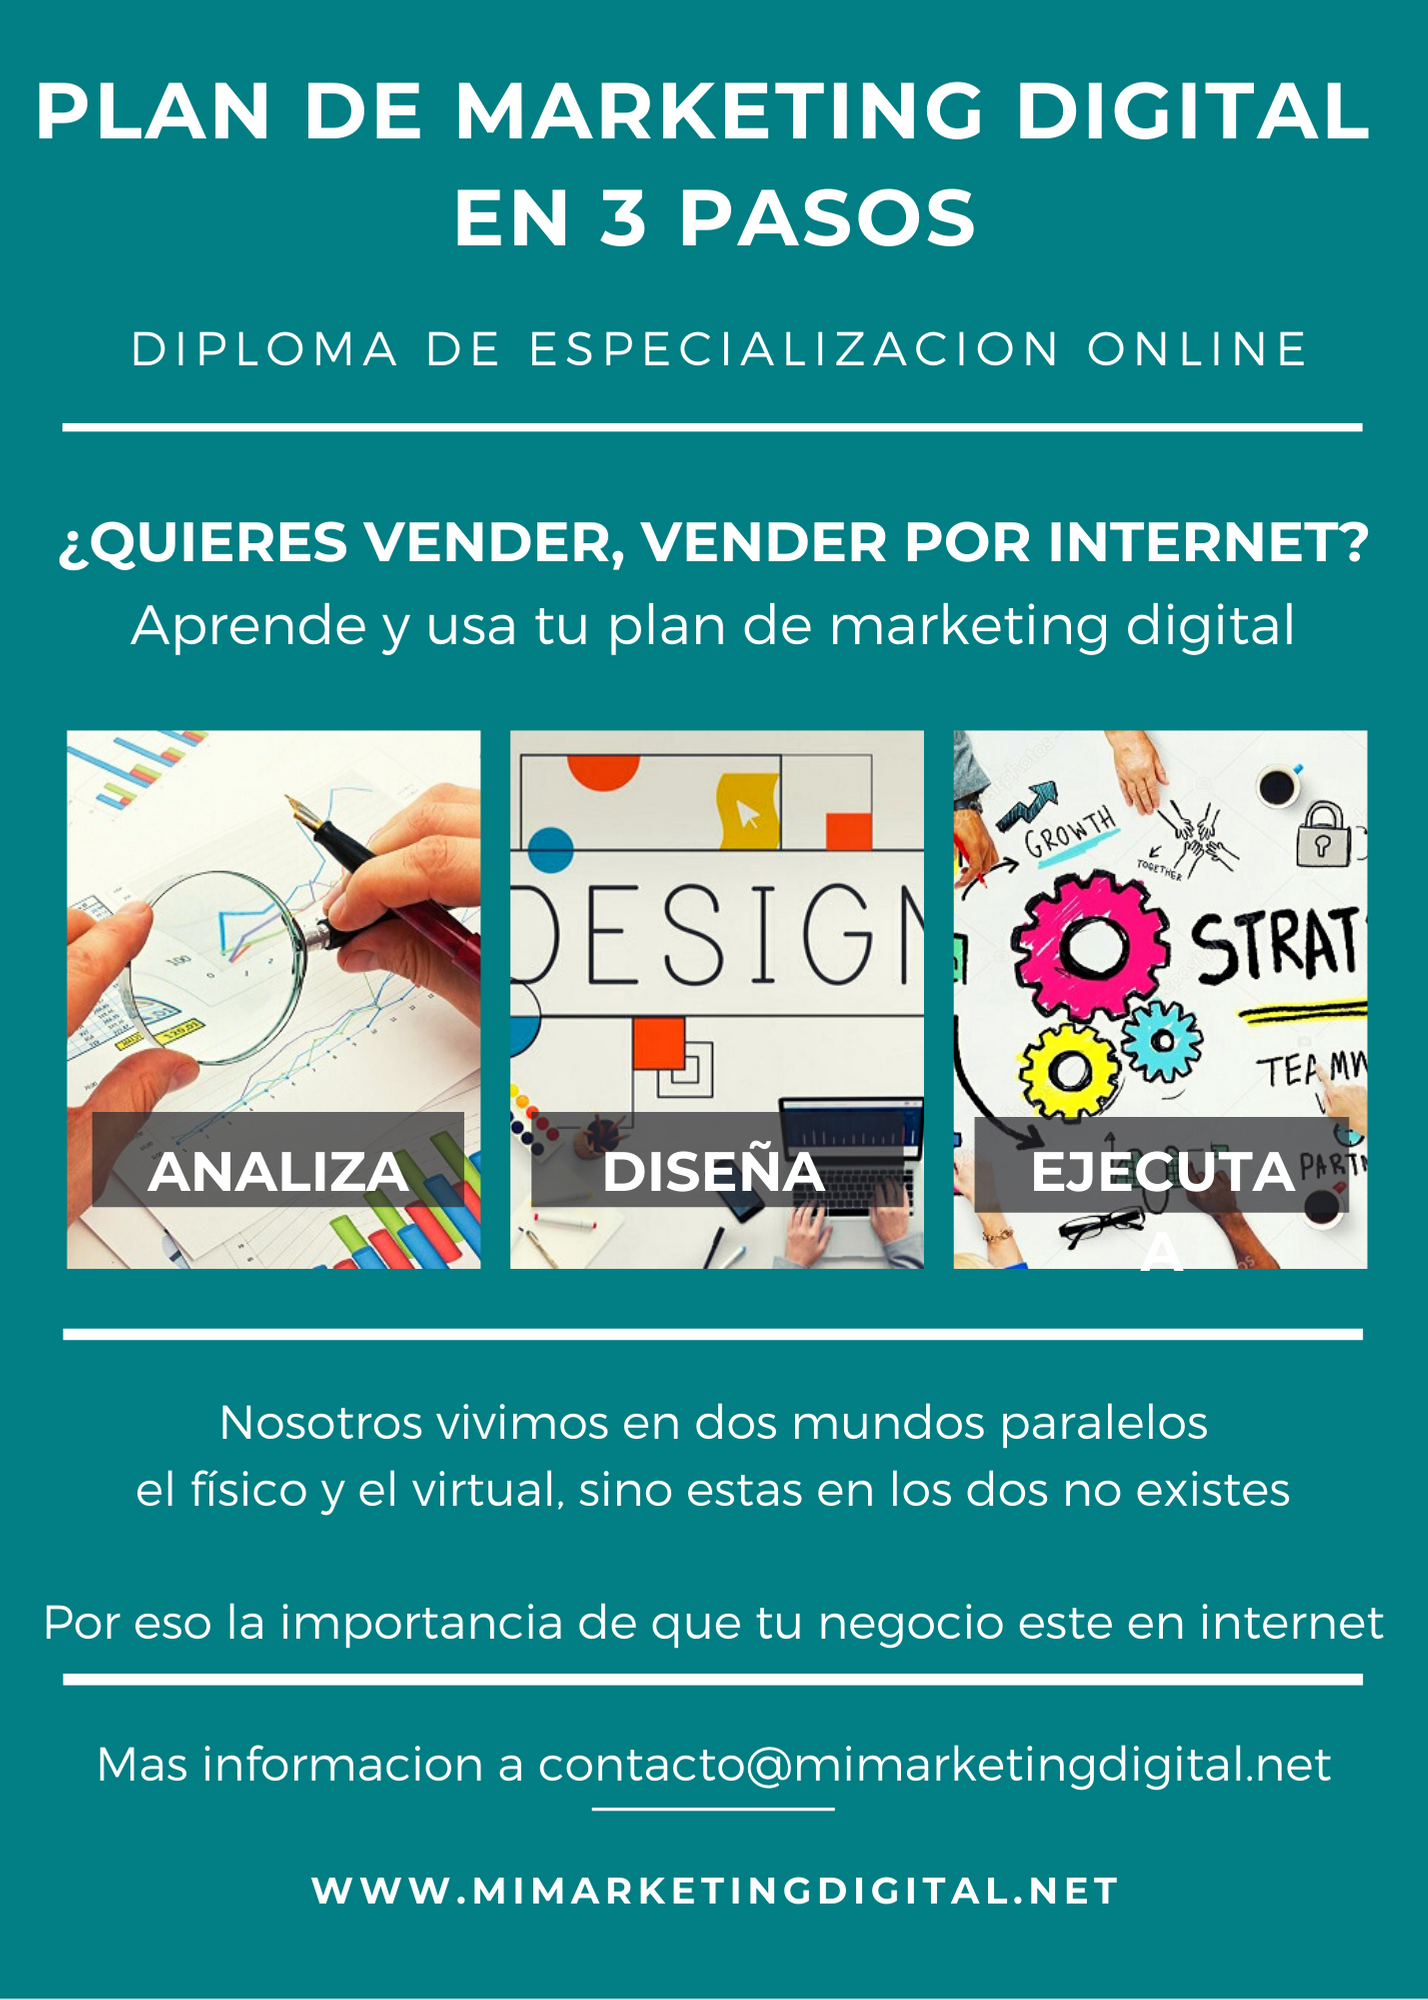 marketind digital en 3 pasos